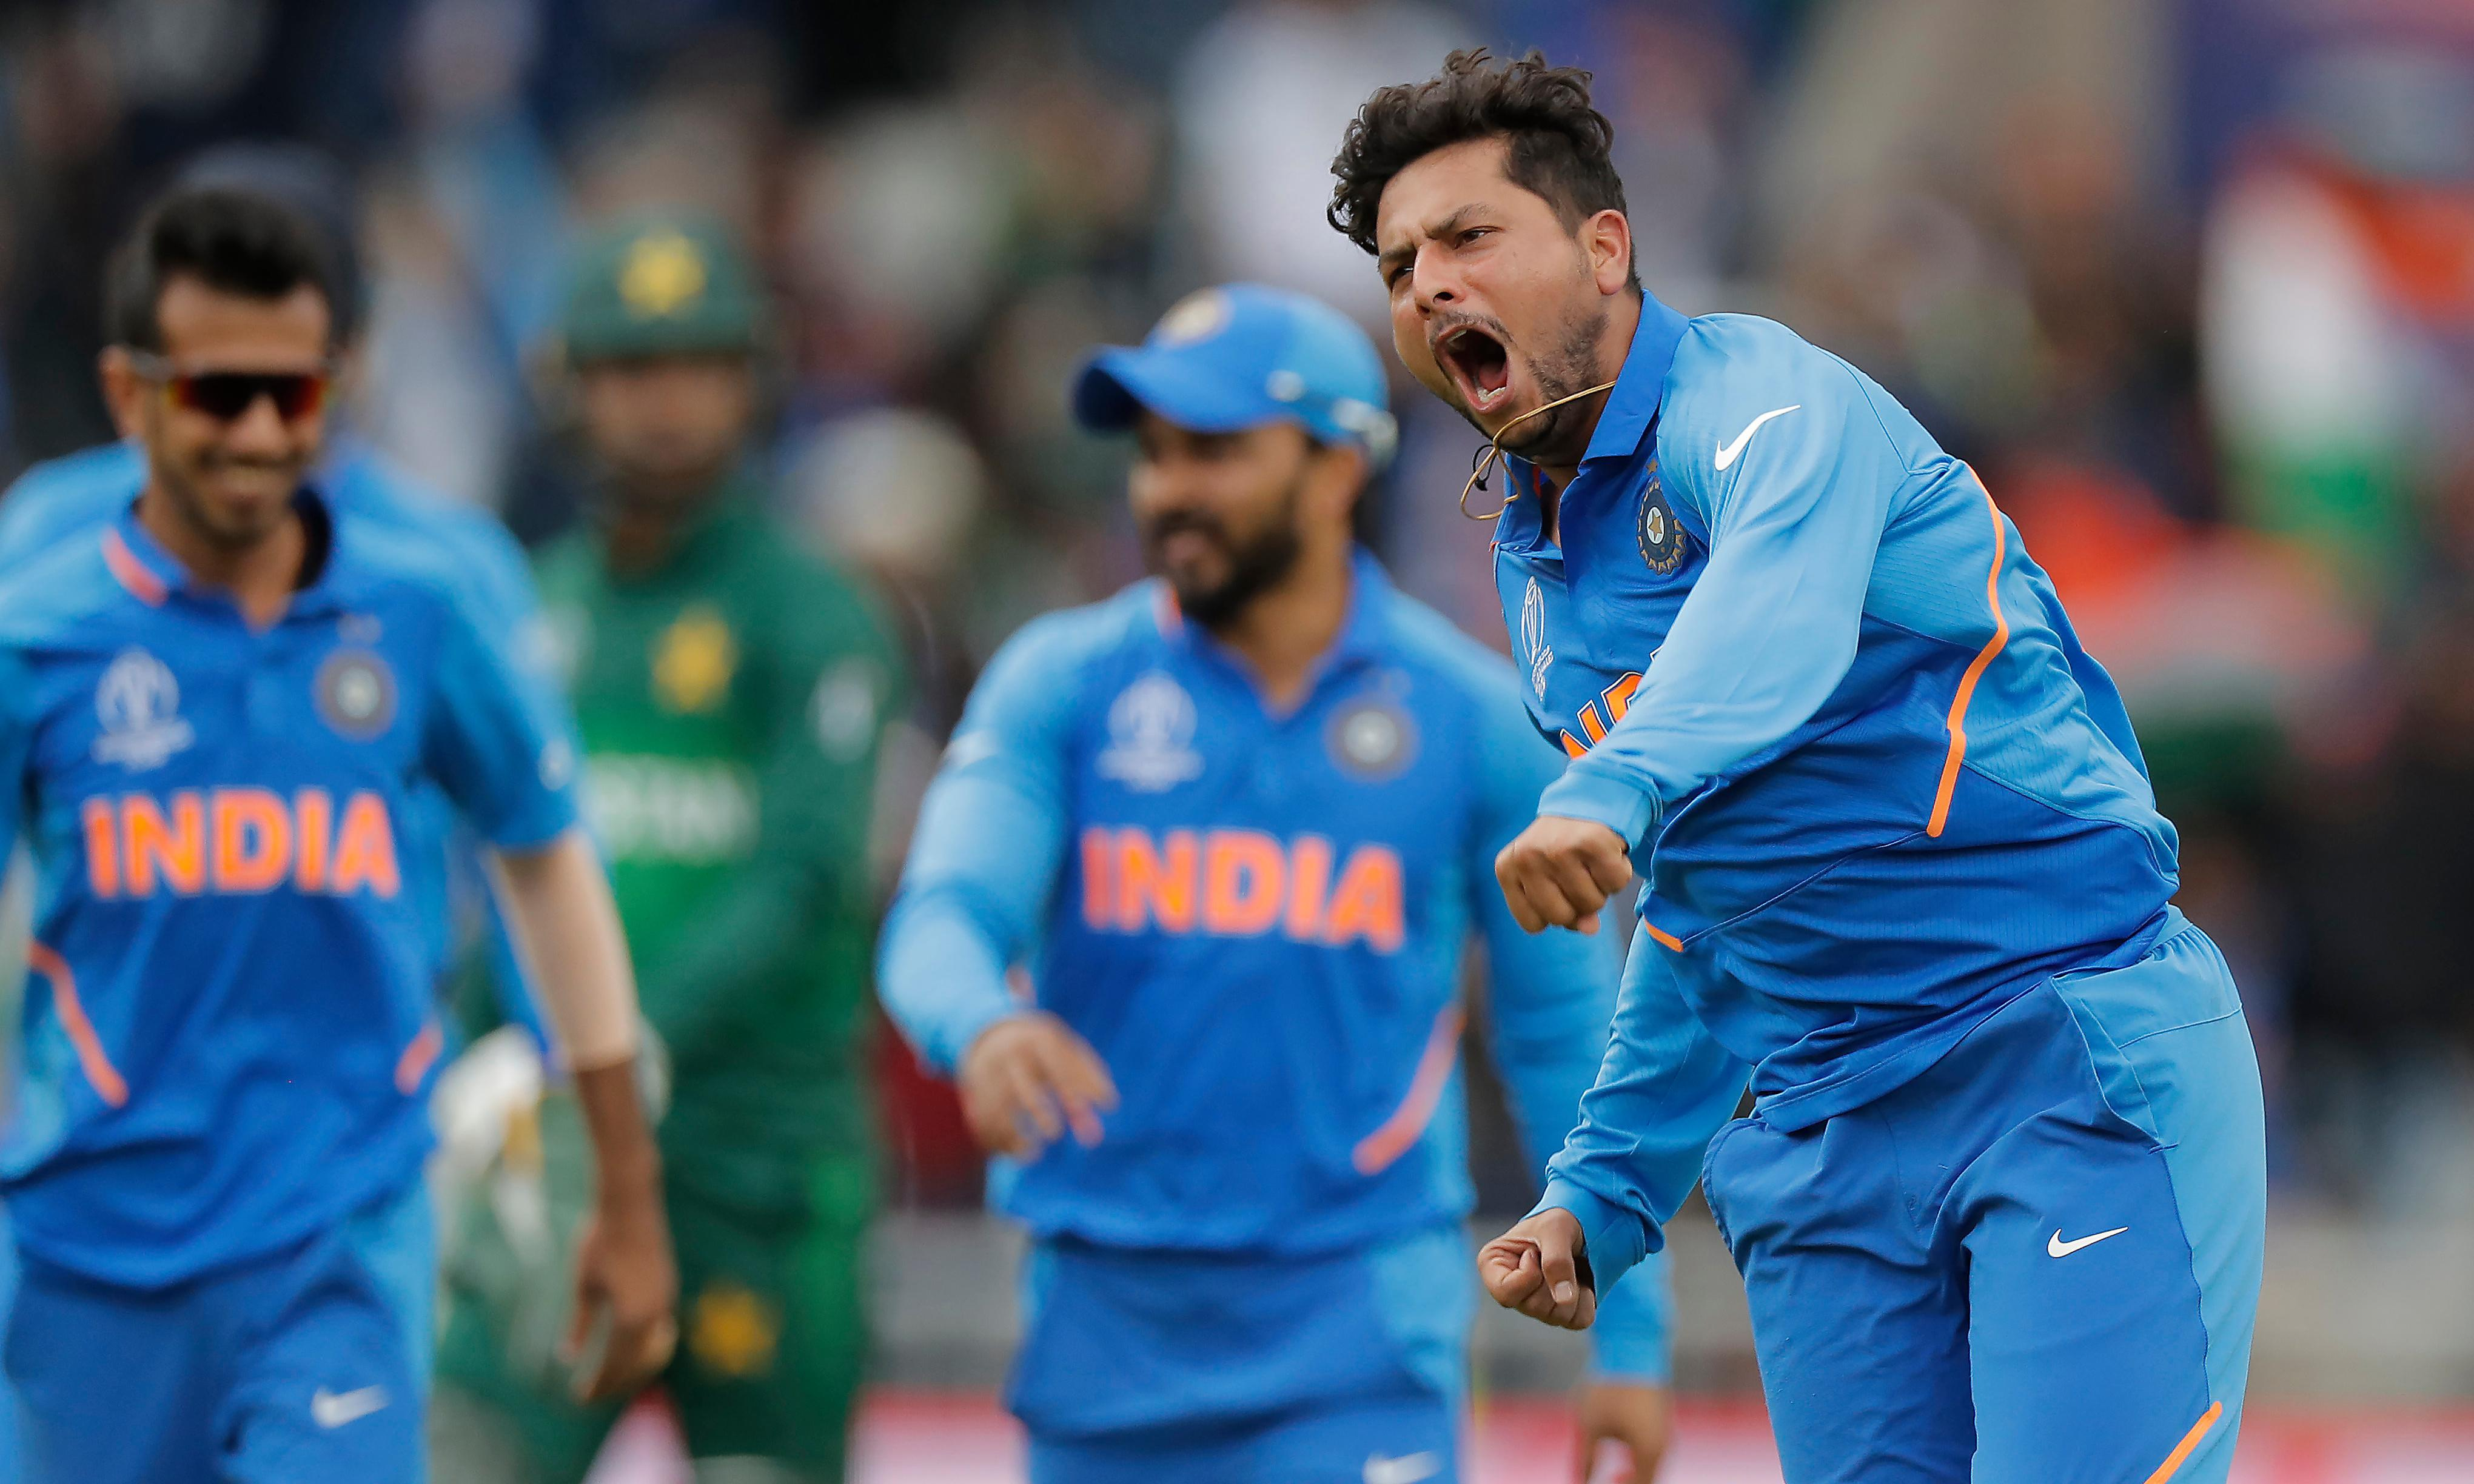 Superb Kuldeep Yadav puts Pakistan in a spin to turn match India's way